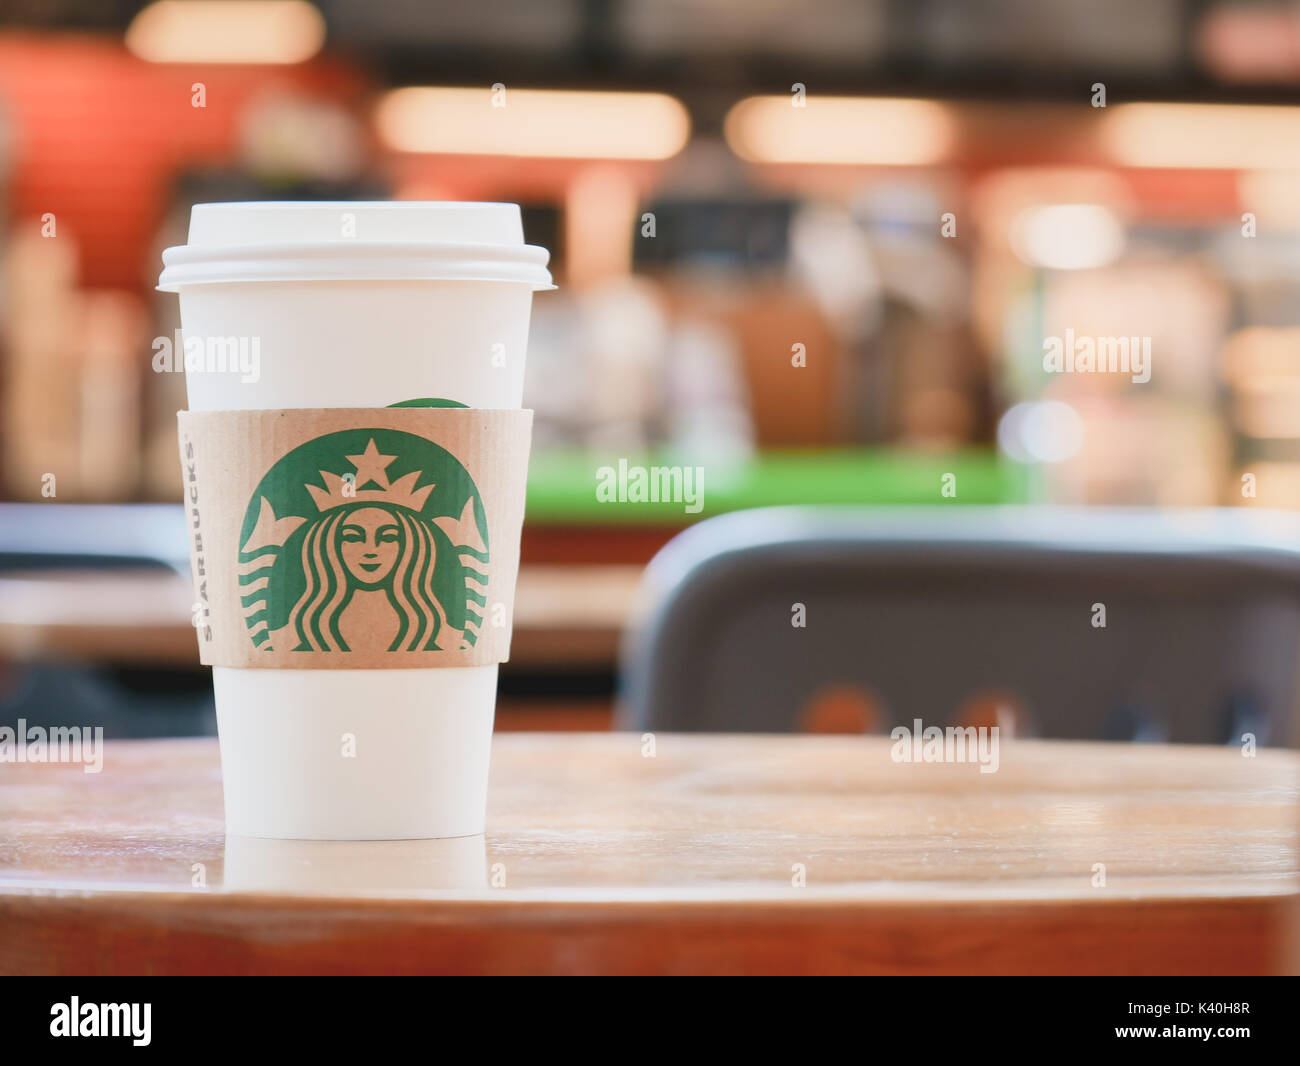 BANGKOK ,THAILAND,1 JULY 2017 : A Cup of Starbucks hot beverage coffee on the table in the Starbucks drive thru shop. Starbucks is the world's largest coffeehouse company - Stock Image